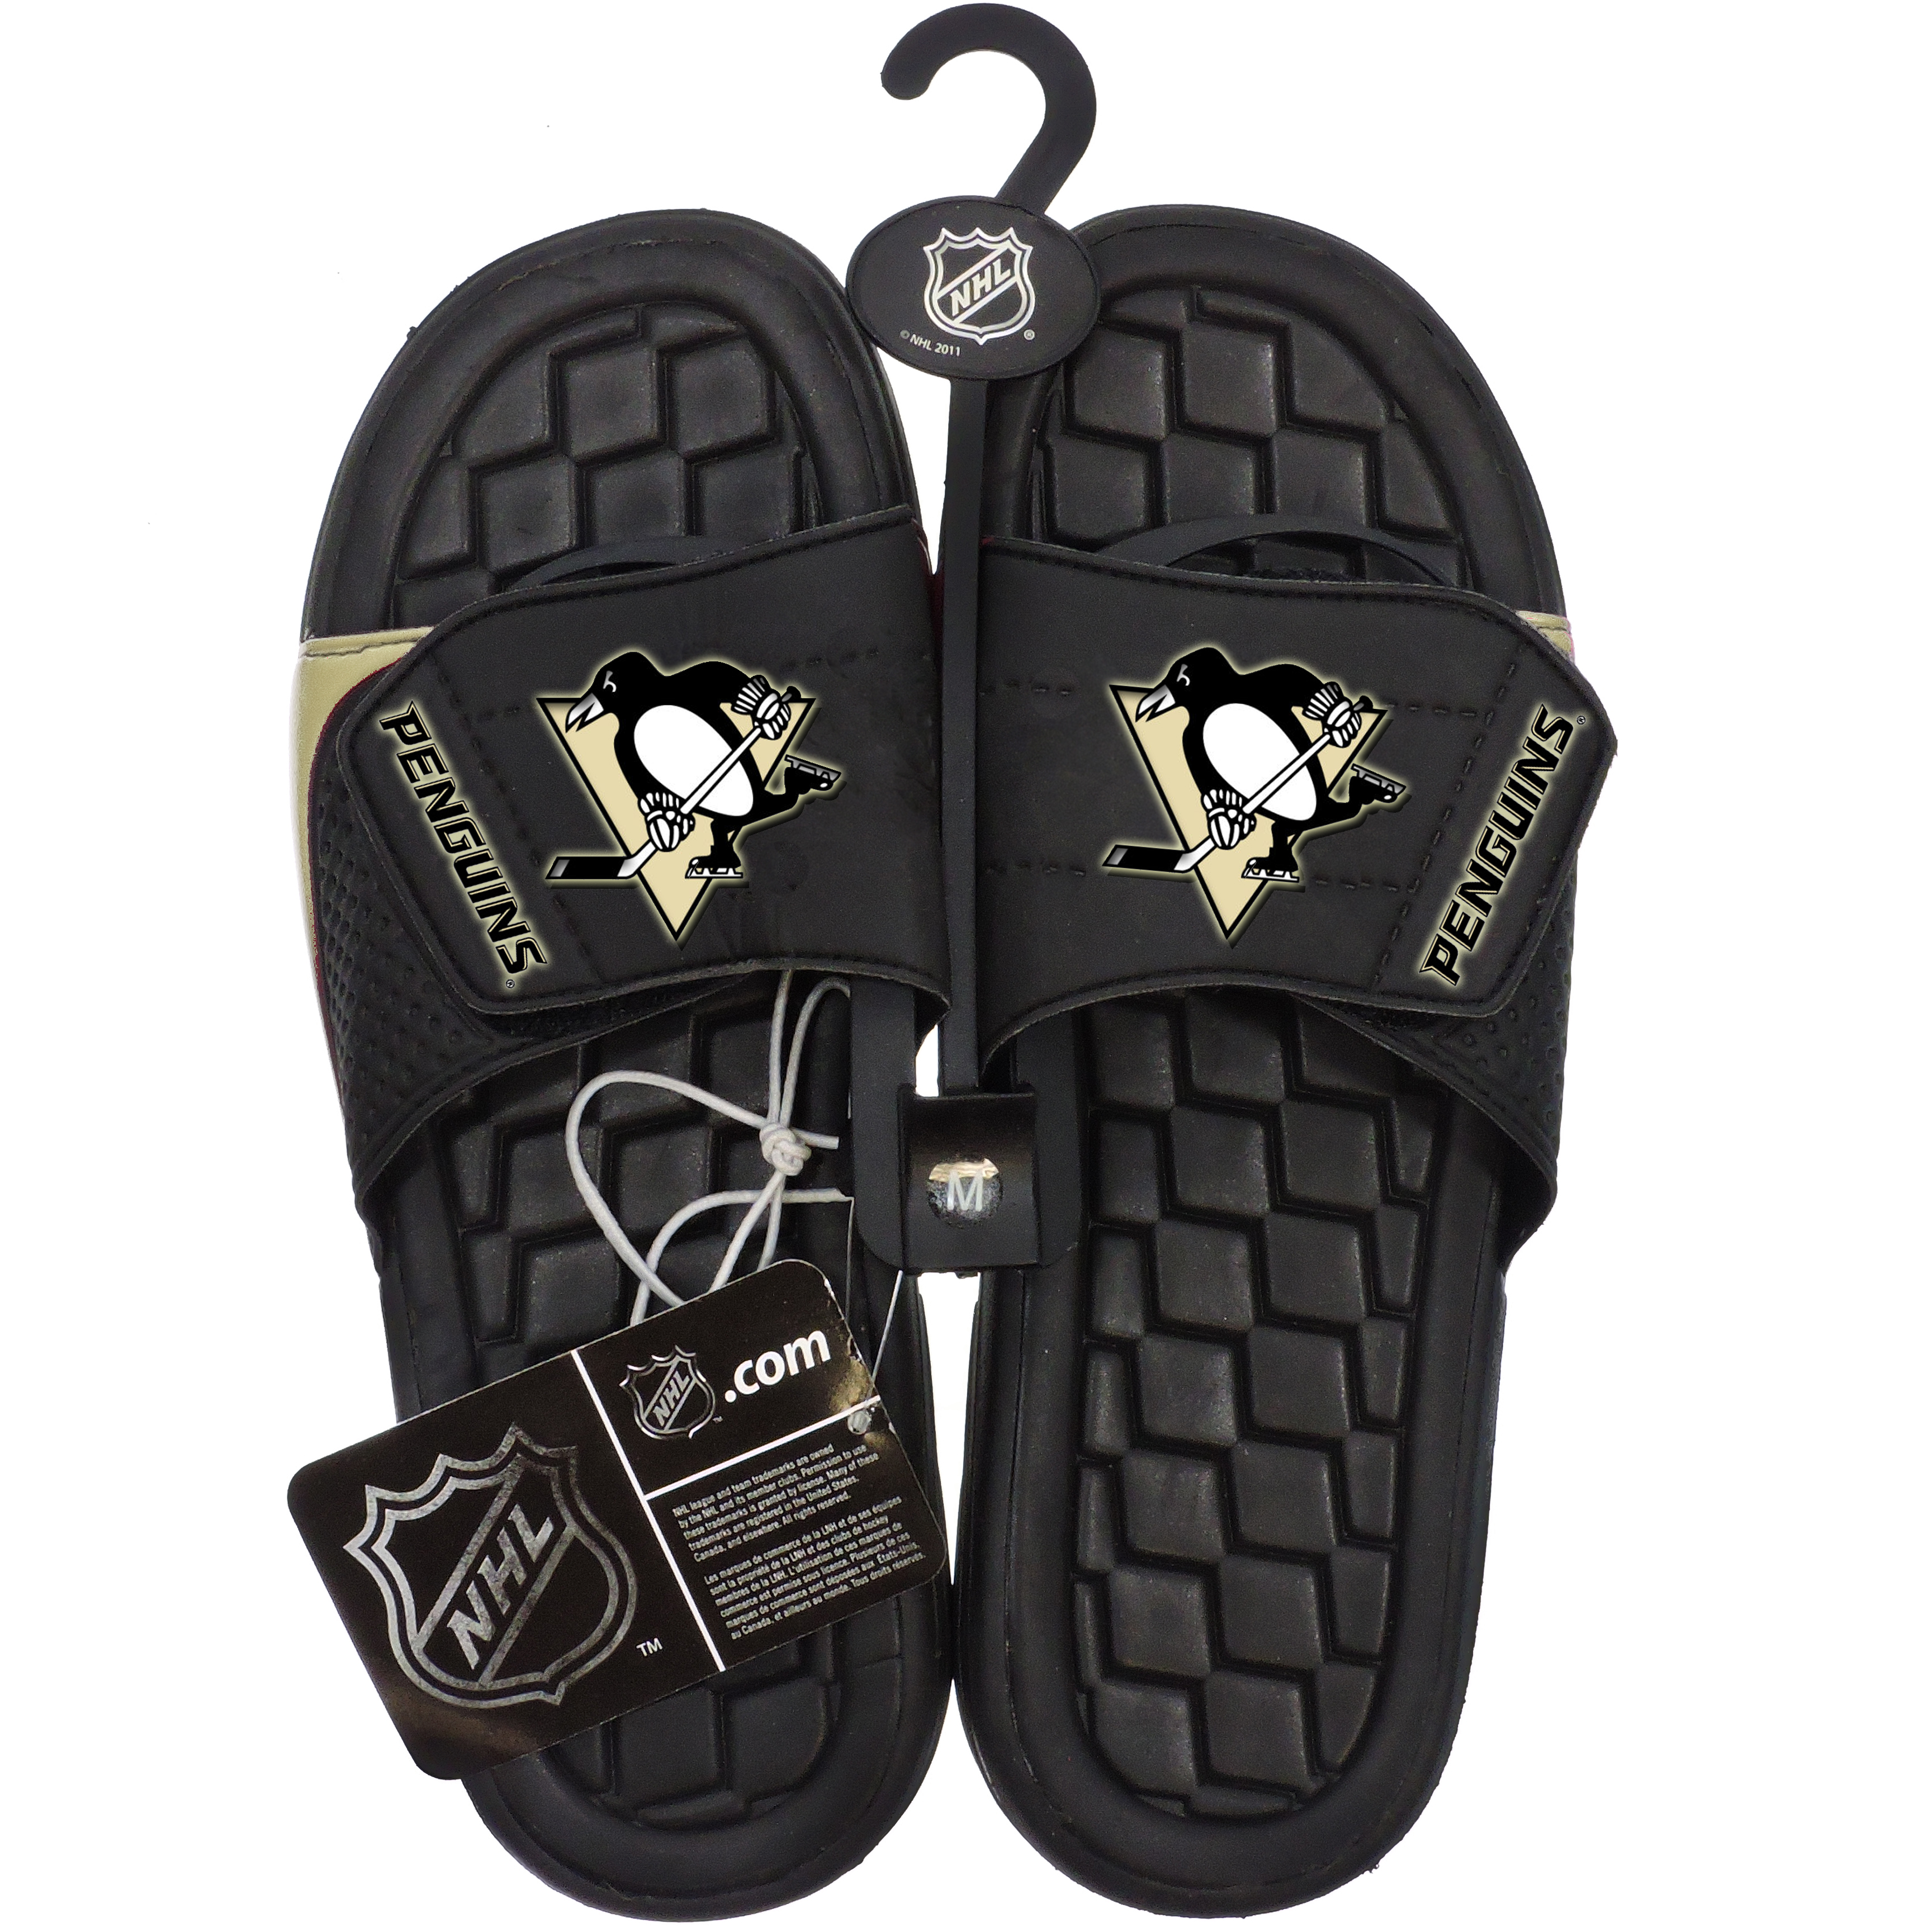 Sandals NHL Hockey Penguins Asst Sizes